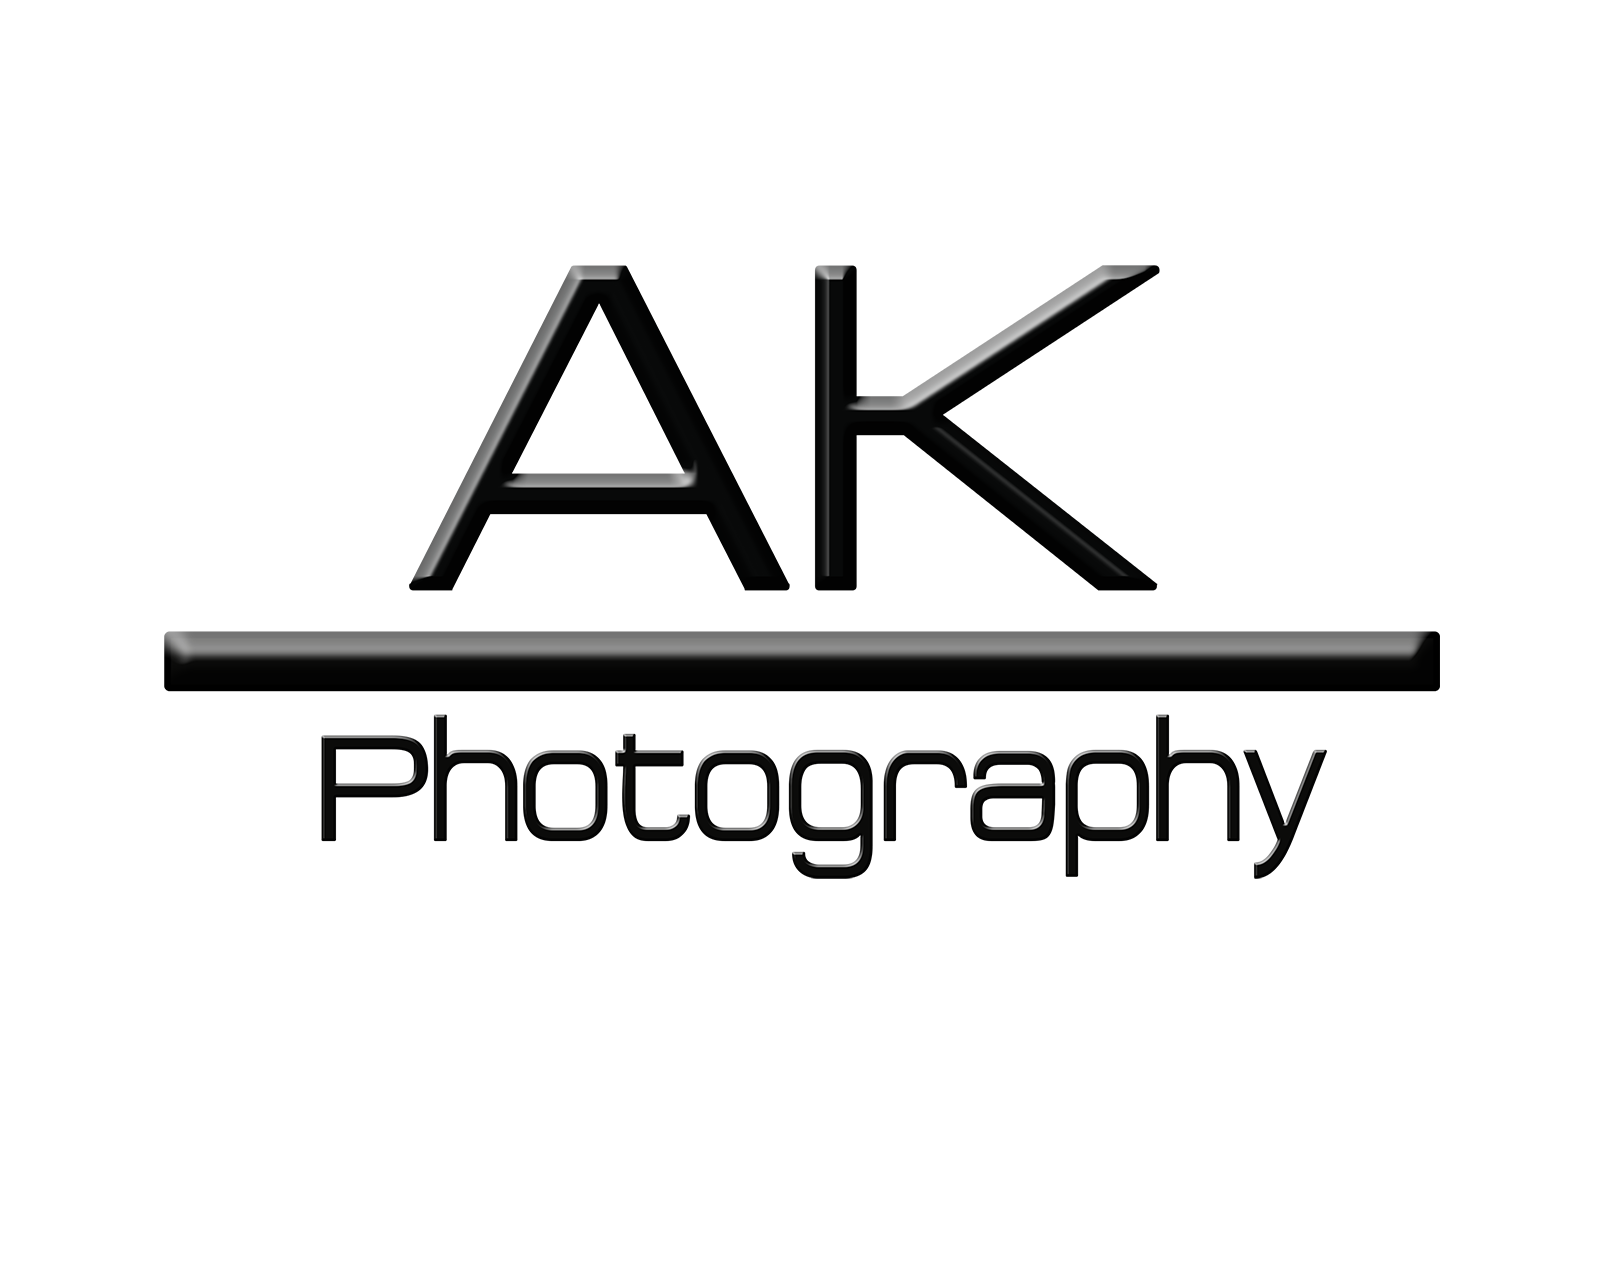 Ak photography logo png. Anthony kane